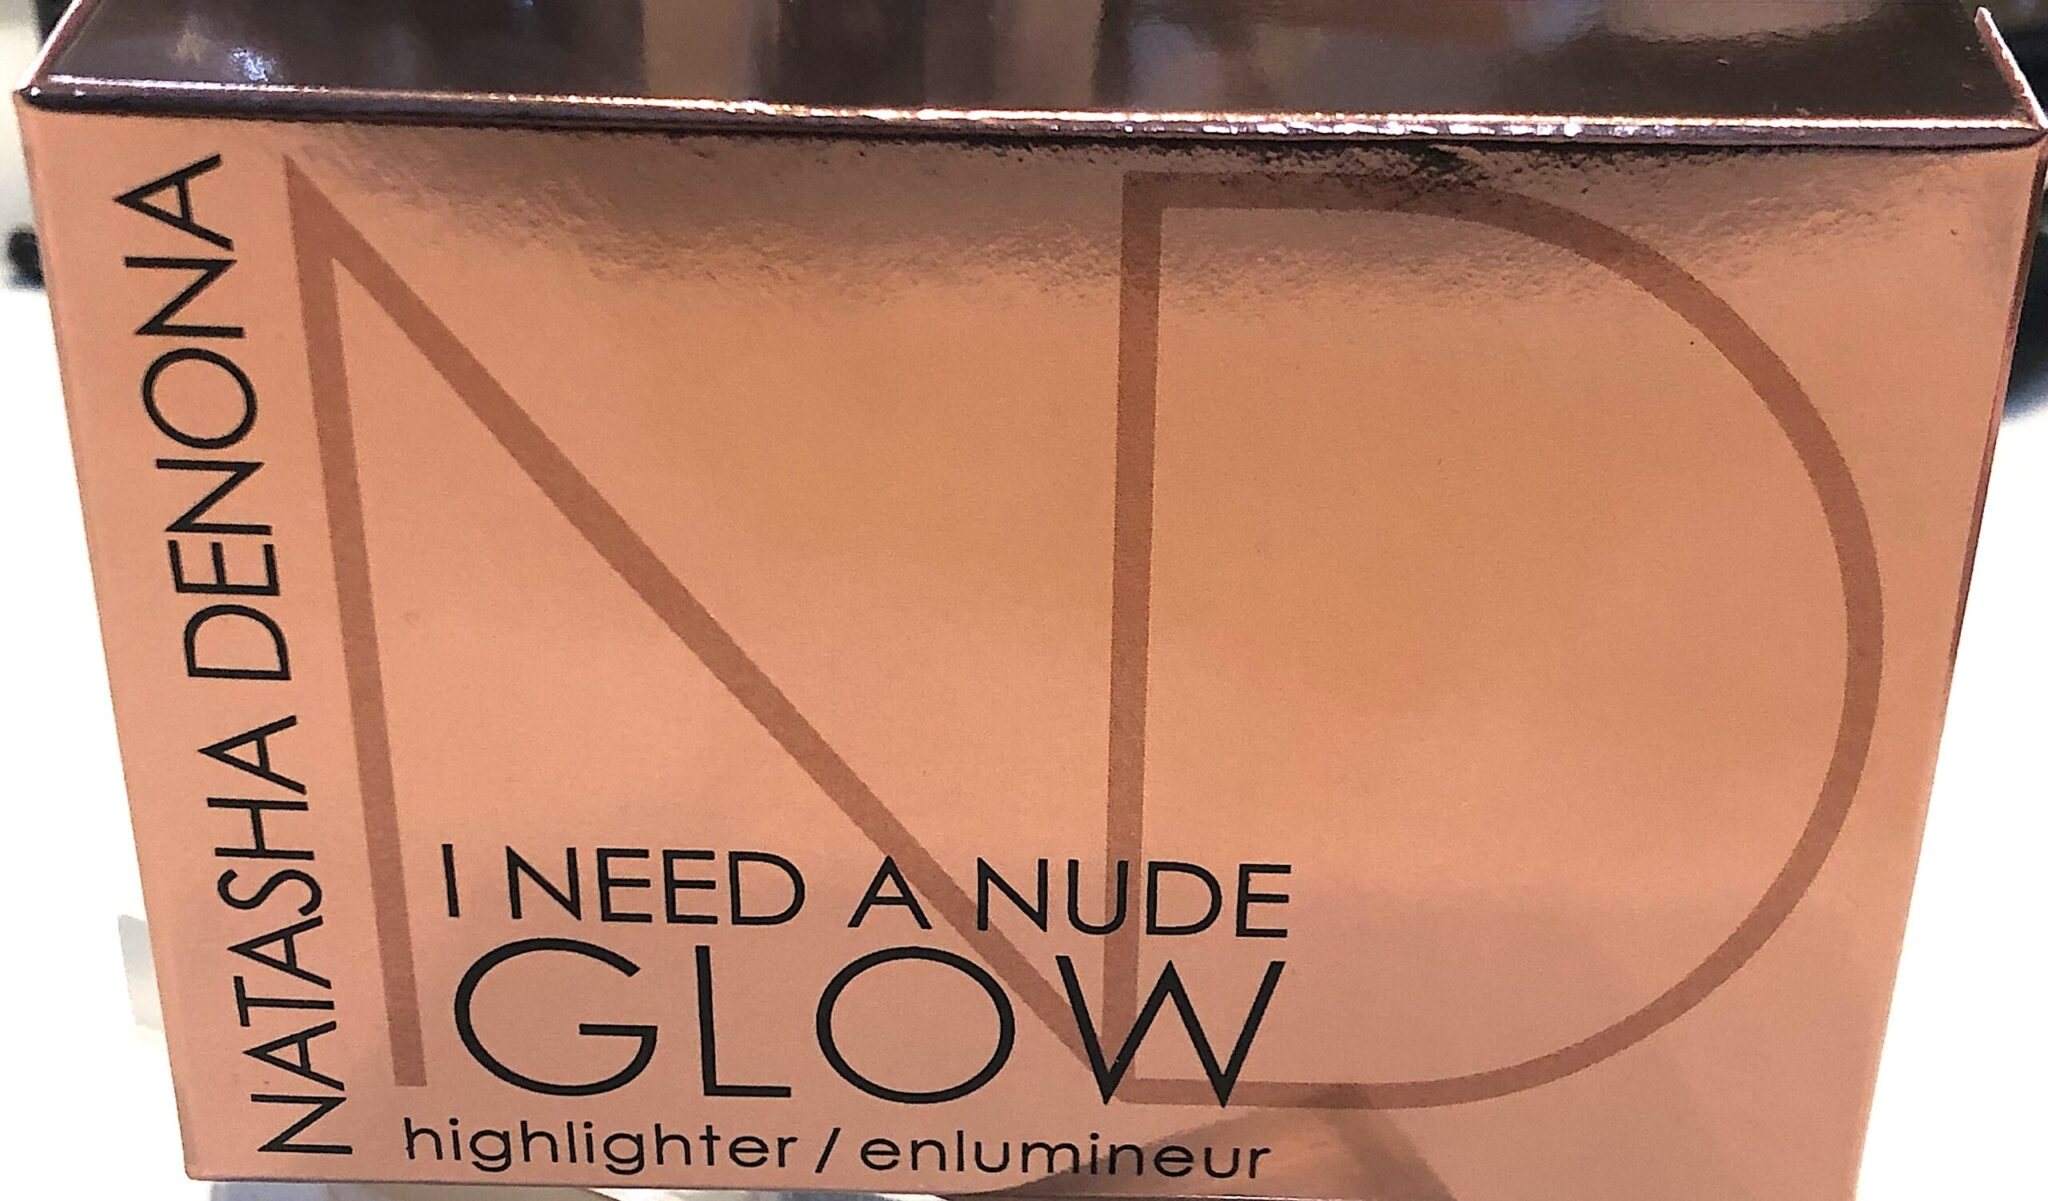 I Need A Nude Glow Highlighter outer box